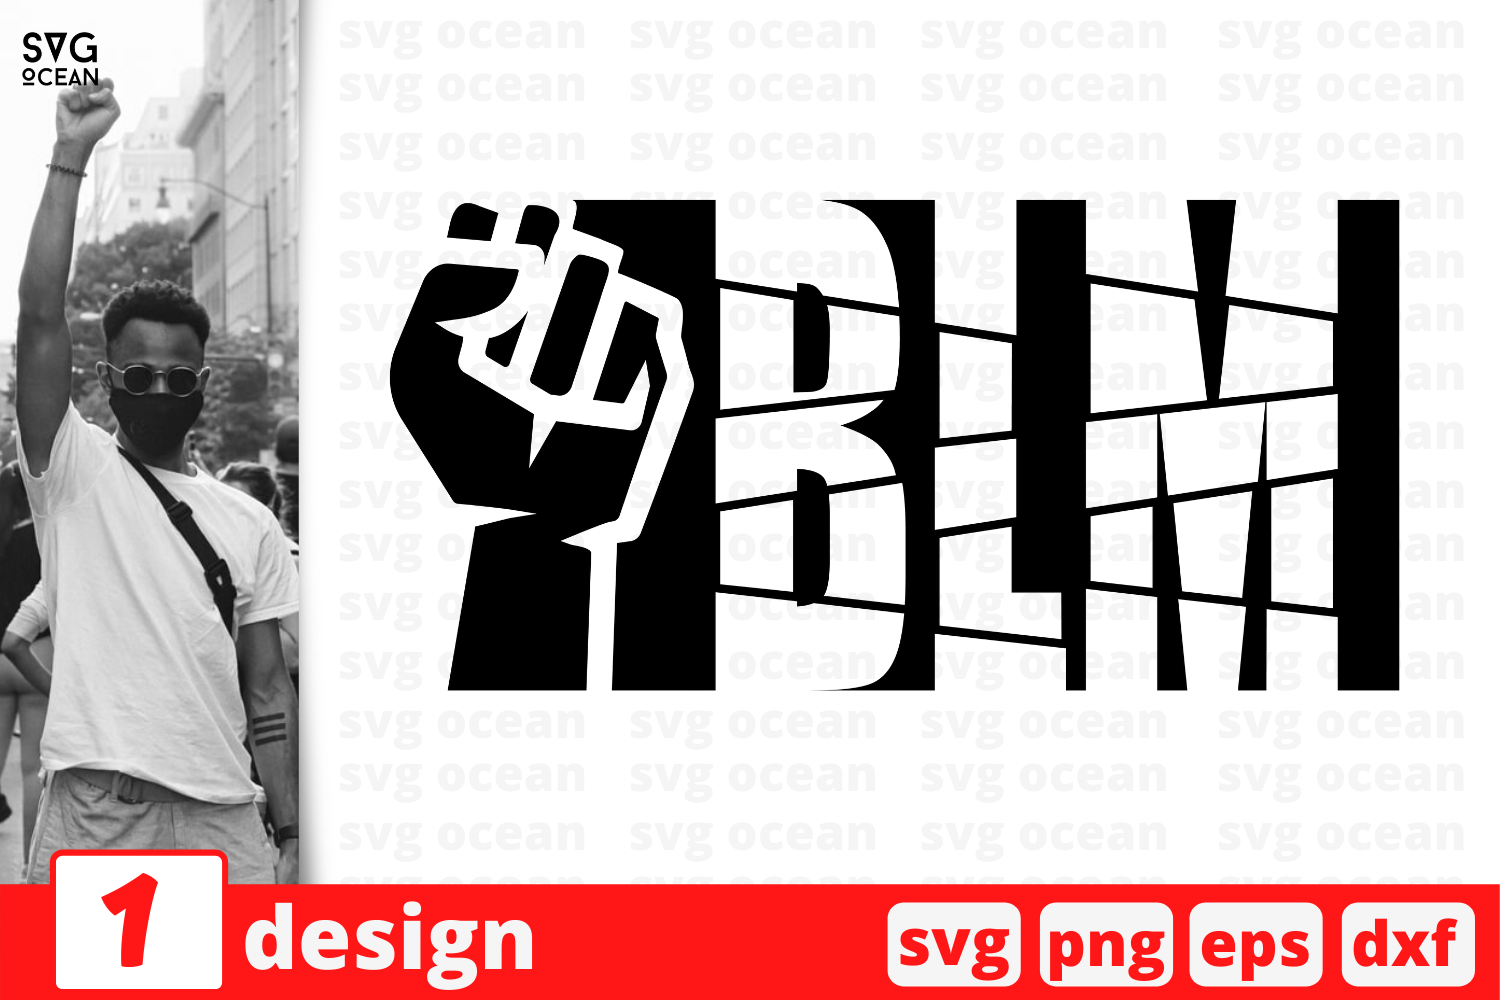 Download Free Black Lives Matter Quotes Graphic By Svgocean Creative Fabrica for Cricut Explore, Silhouette and other cutting machines.